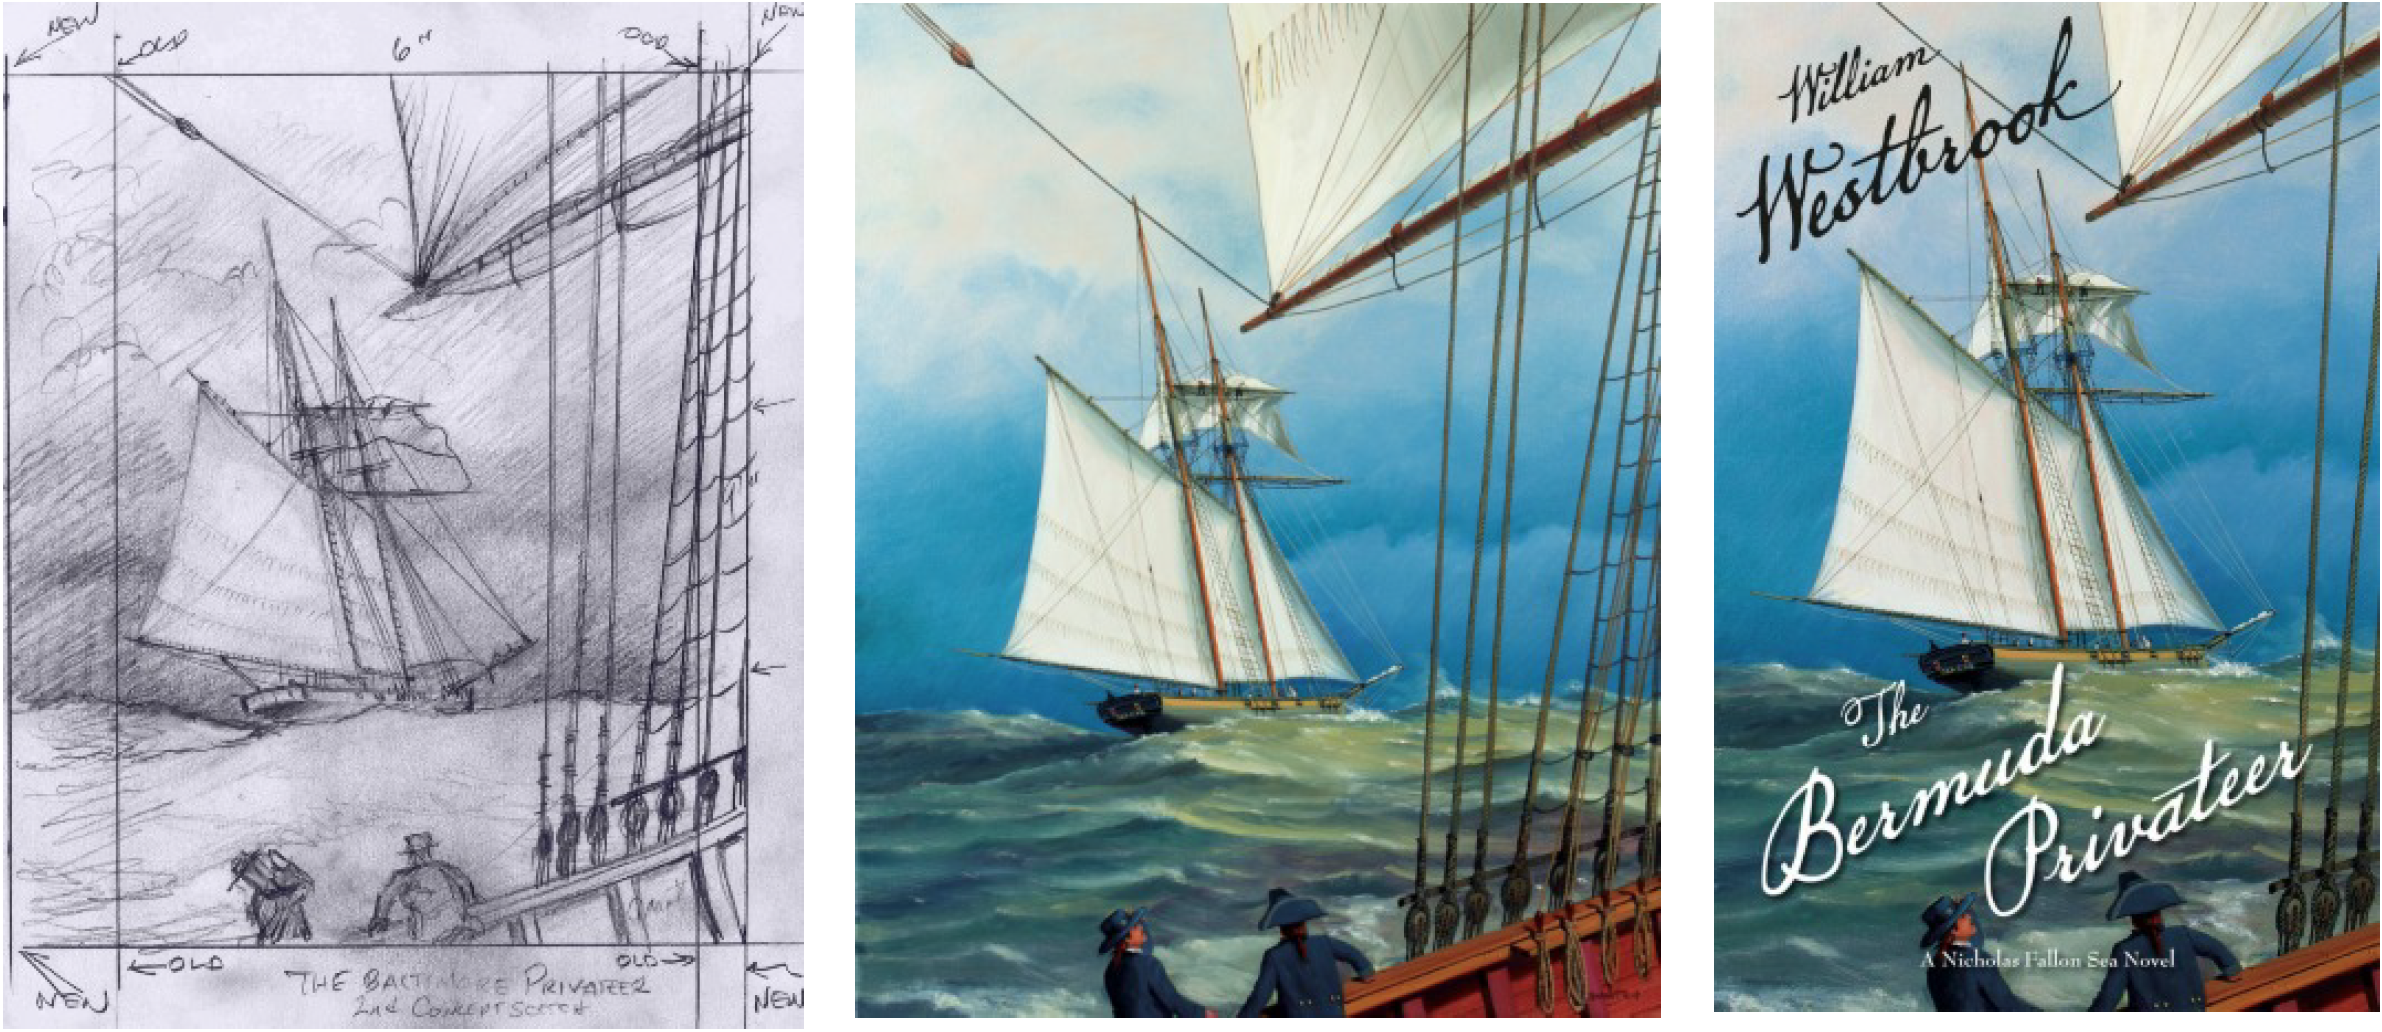 Producing the cover art for The Bermuda Prizeby William Westbrook began with a preliminary sketch (left) by marine artist Paul Garnett, which was based on a section of Westbrook's manuscript. Once the concept was approved by McBooks Press publisher Alex Skutt and Art Director Panda Musgrove, Garnett created an oil painting (center). Musgrove then took the finished painting, created a digital image, and cropped the image to the book's dimensions and added appropriate type, creating the finished product (right).